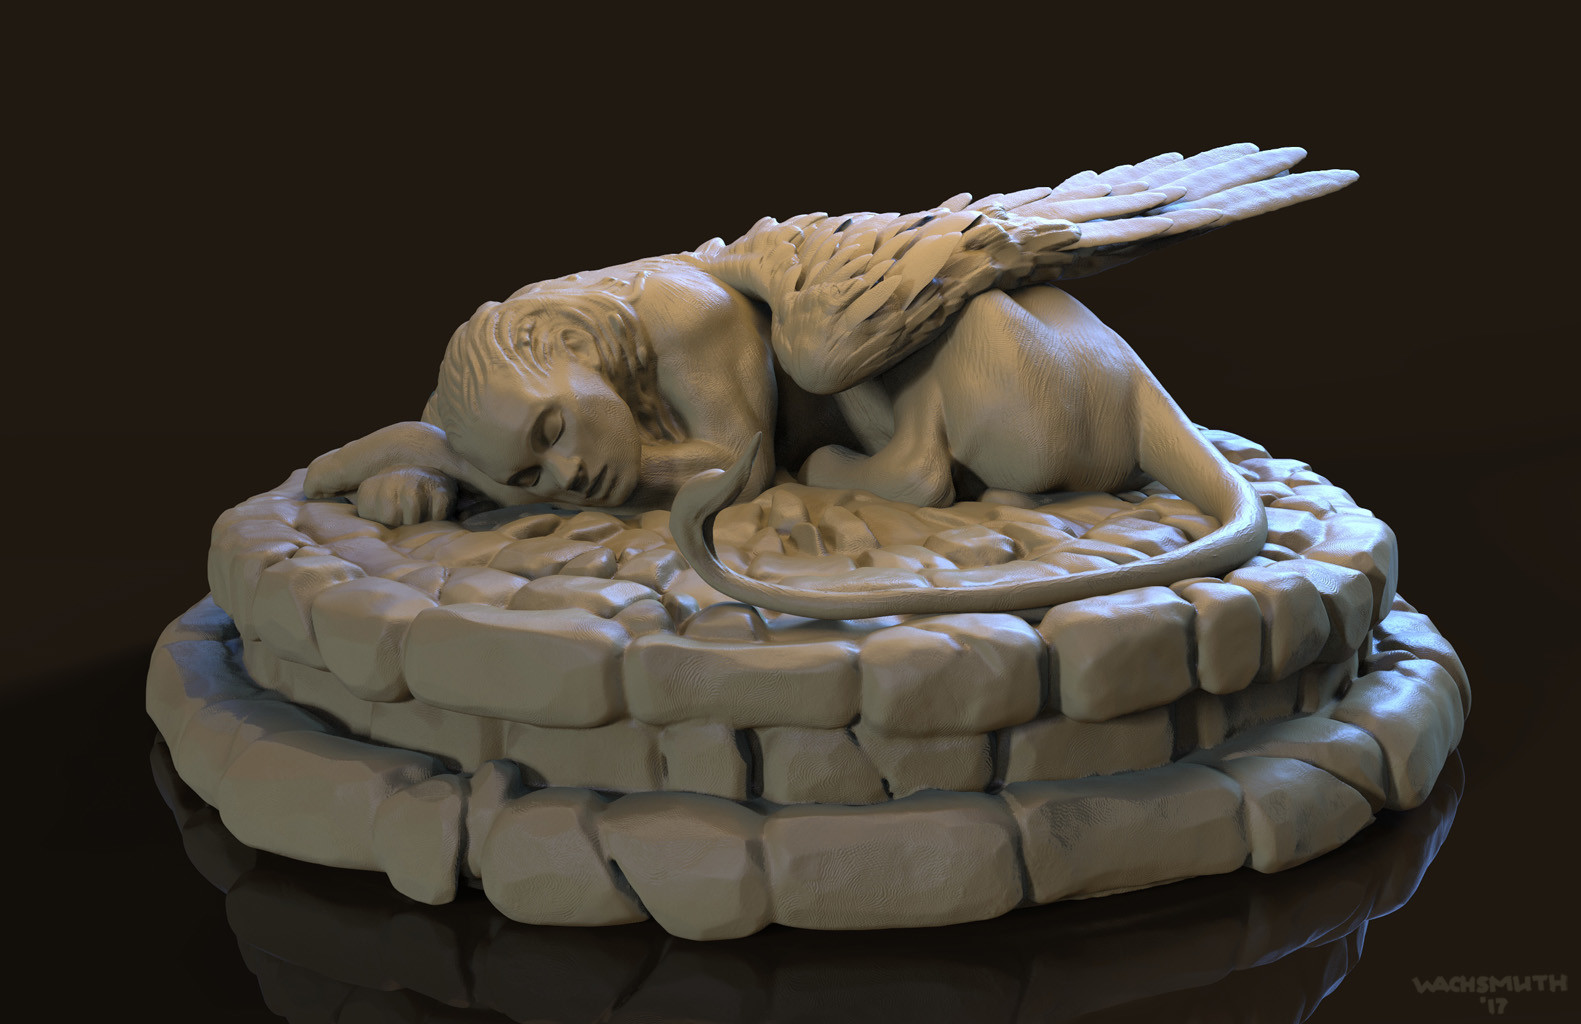 Dirk wachsmuth sphinx render 02 4web